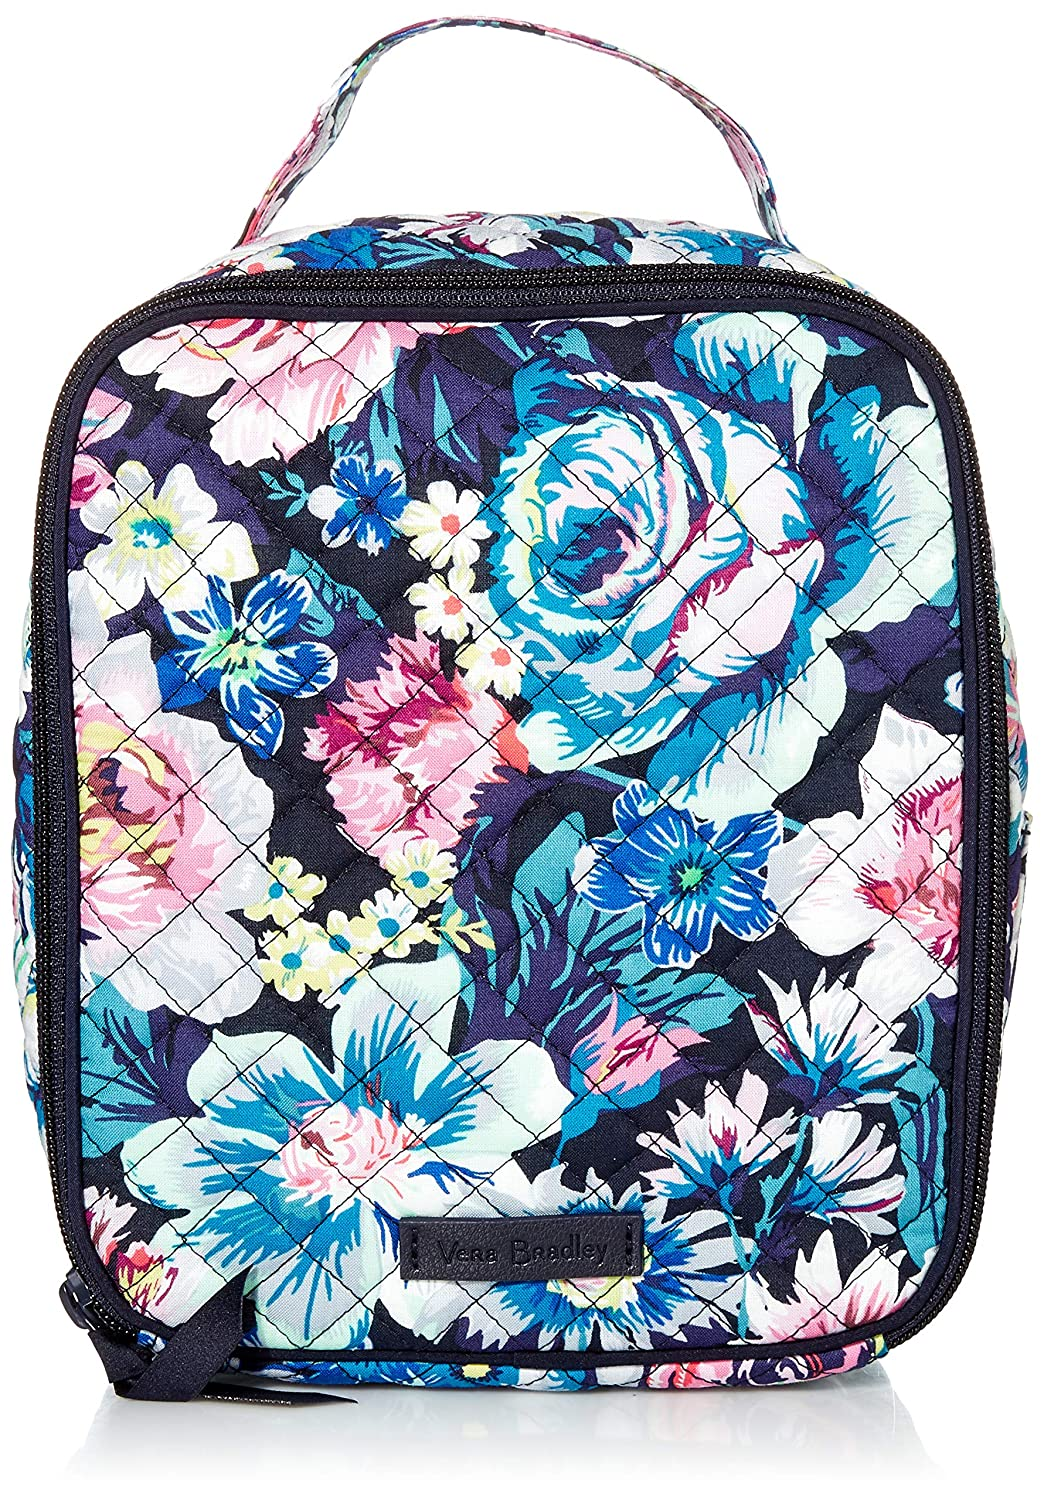 Vera Bradley Iconic Lunch Bunch Signature Cotton